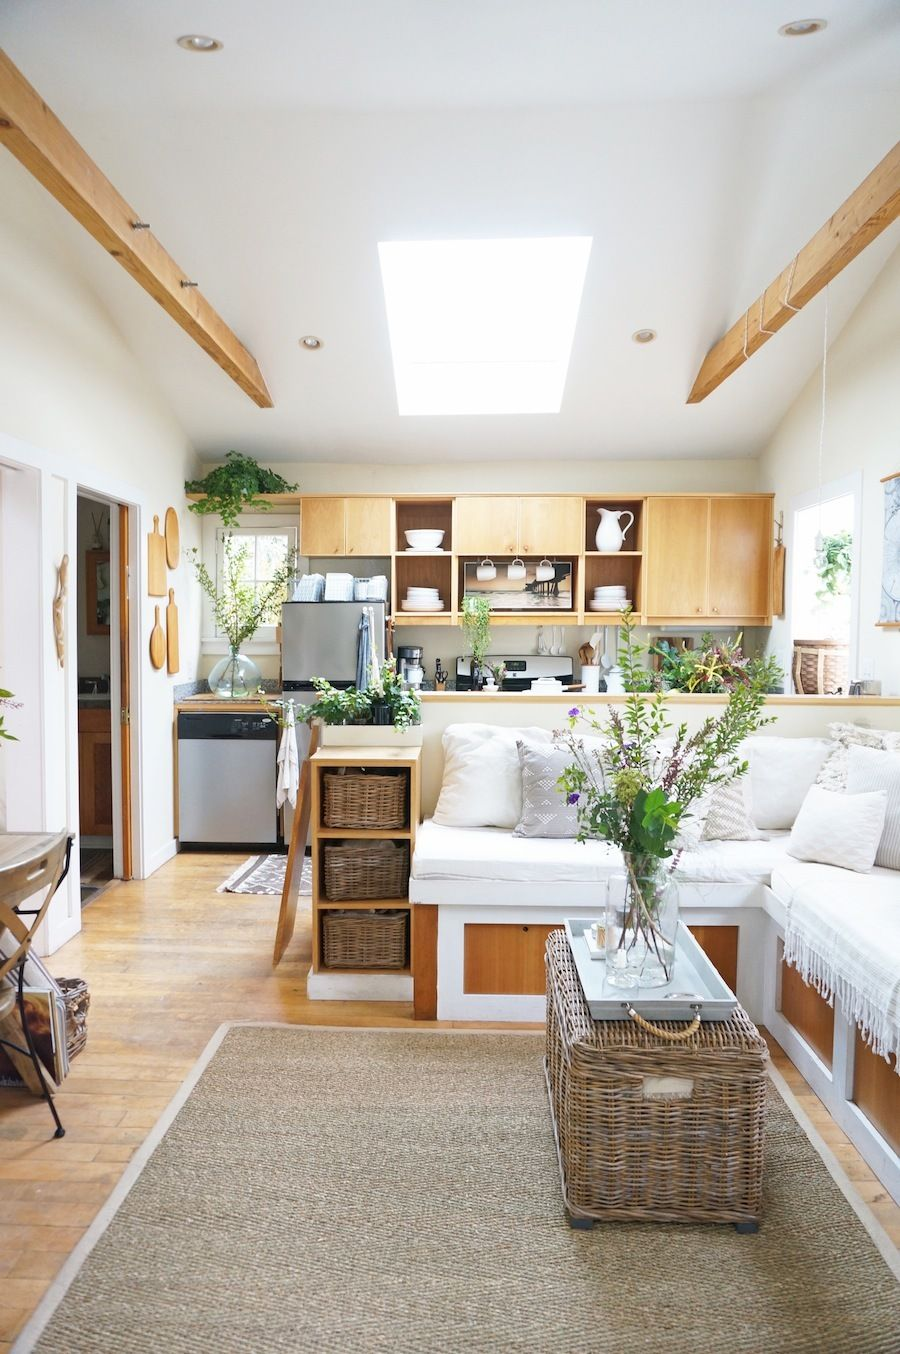 a cottage small on space and big on design savvy small cottage interiors small space design on kitchen interior small space id=98181